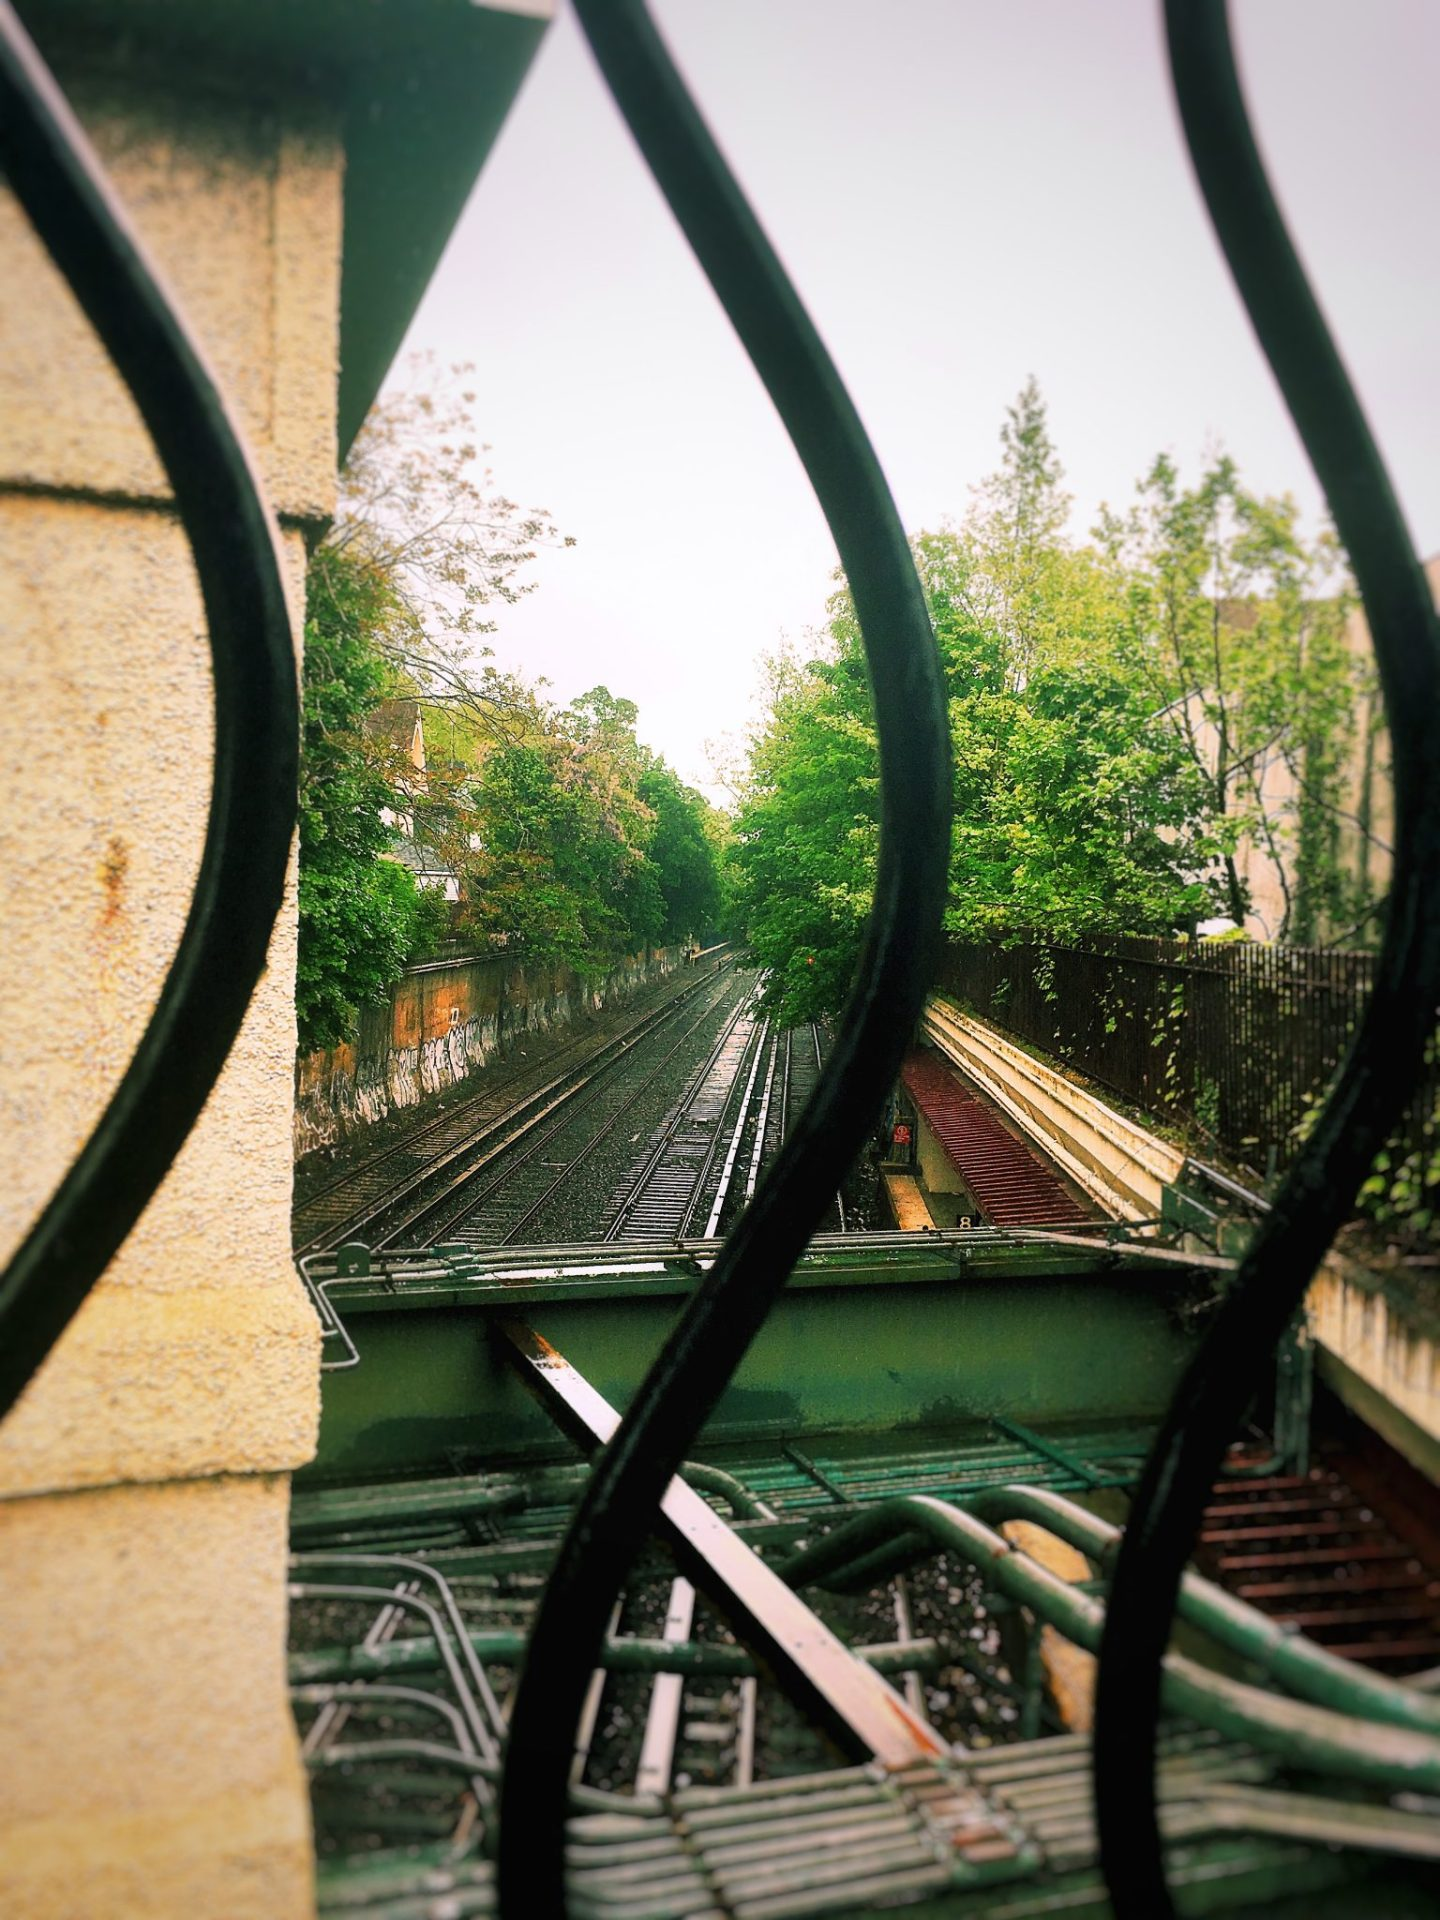 Ditmas Park, Cortelyou train tracks